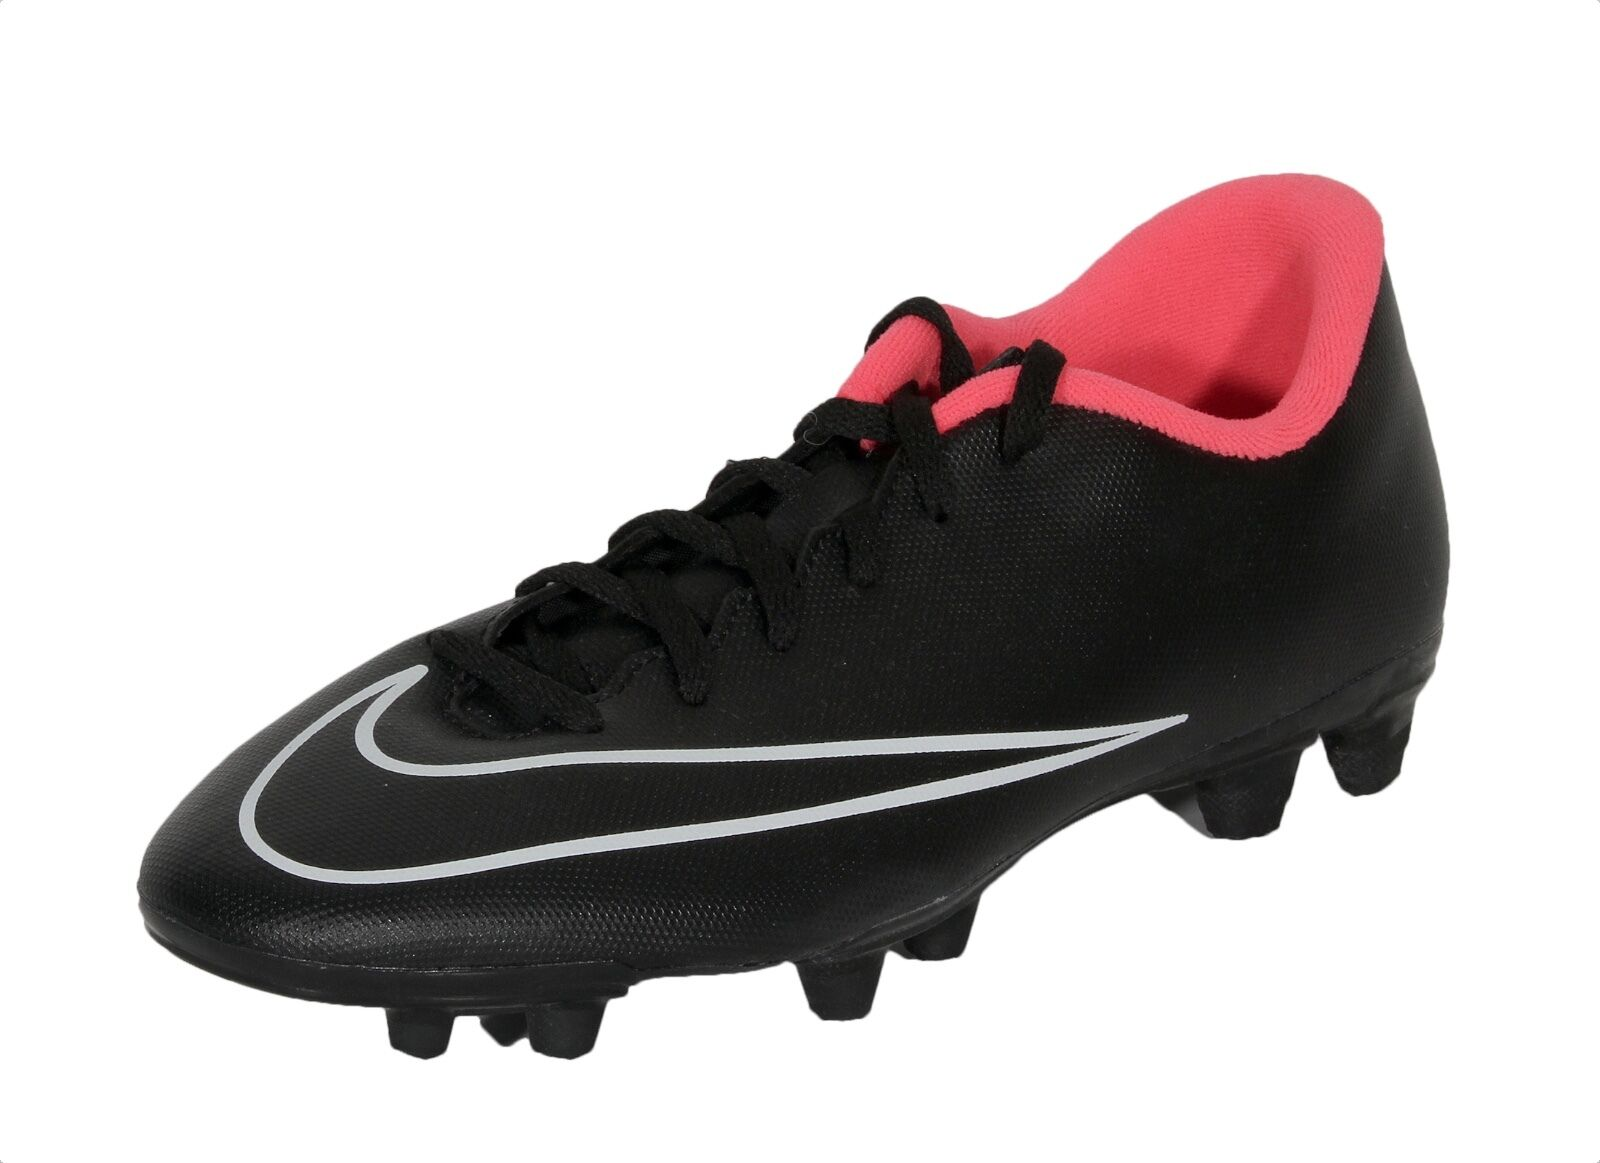 Nike Mercurial Vortex II FG Men's Soccer Cleats 651647-016 NIB Authentic Price reduction The most popular shoes for men and women